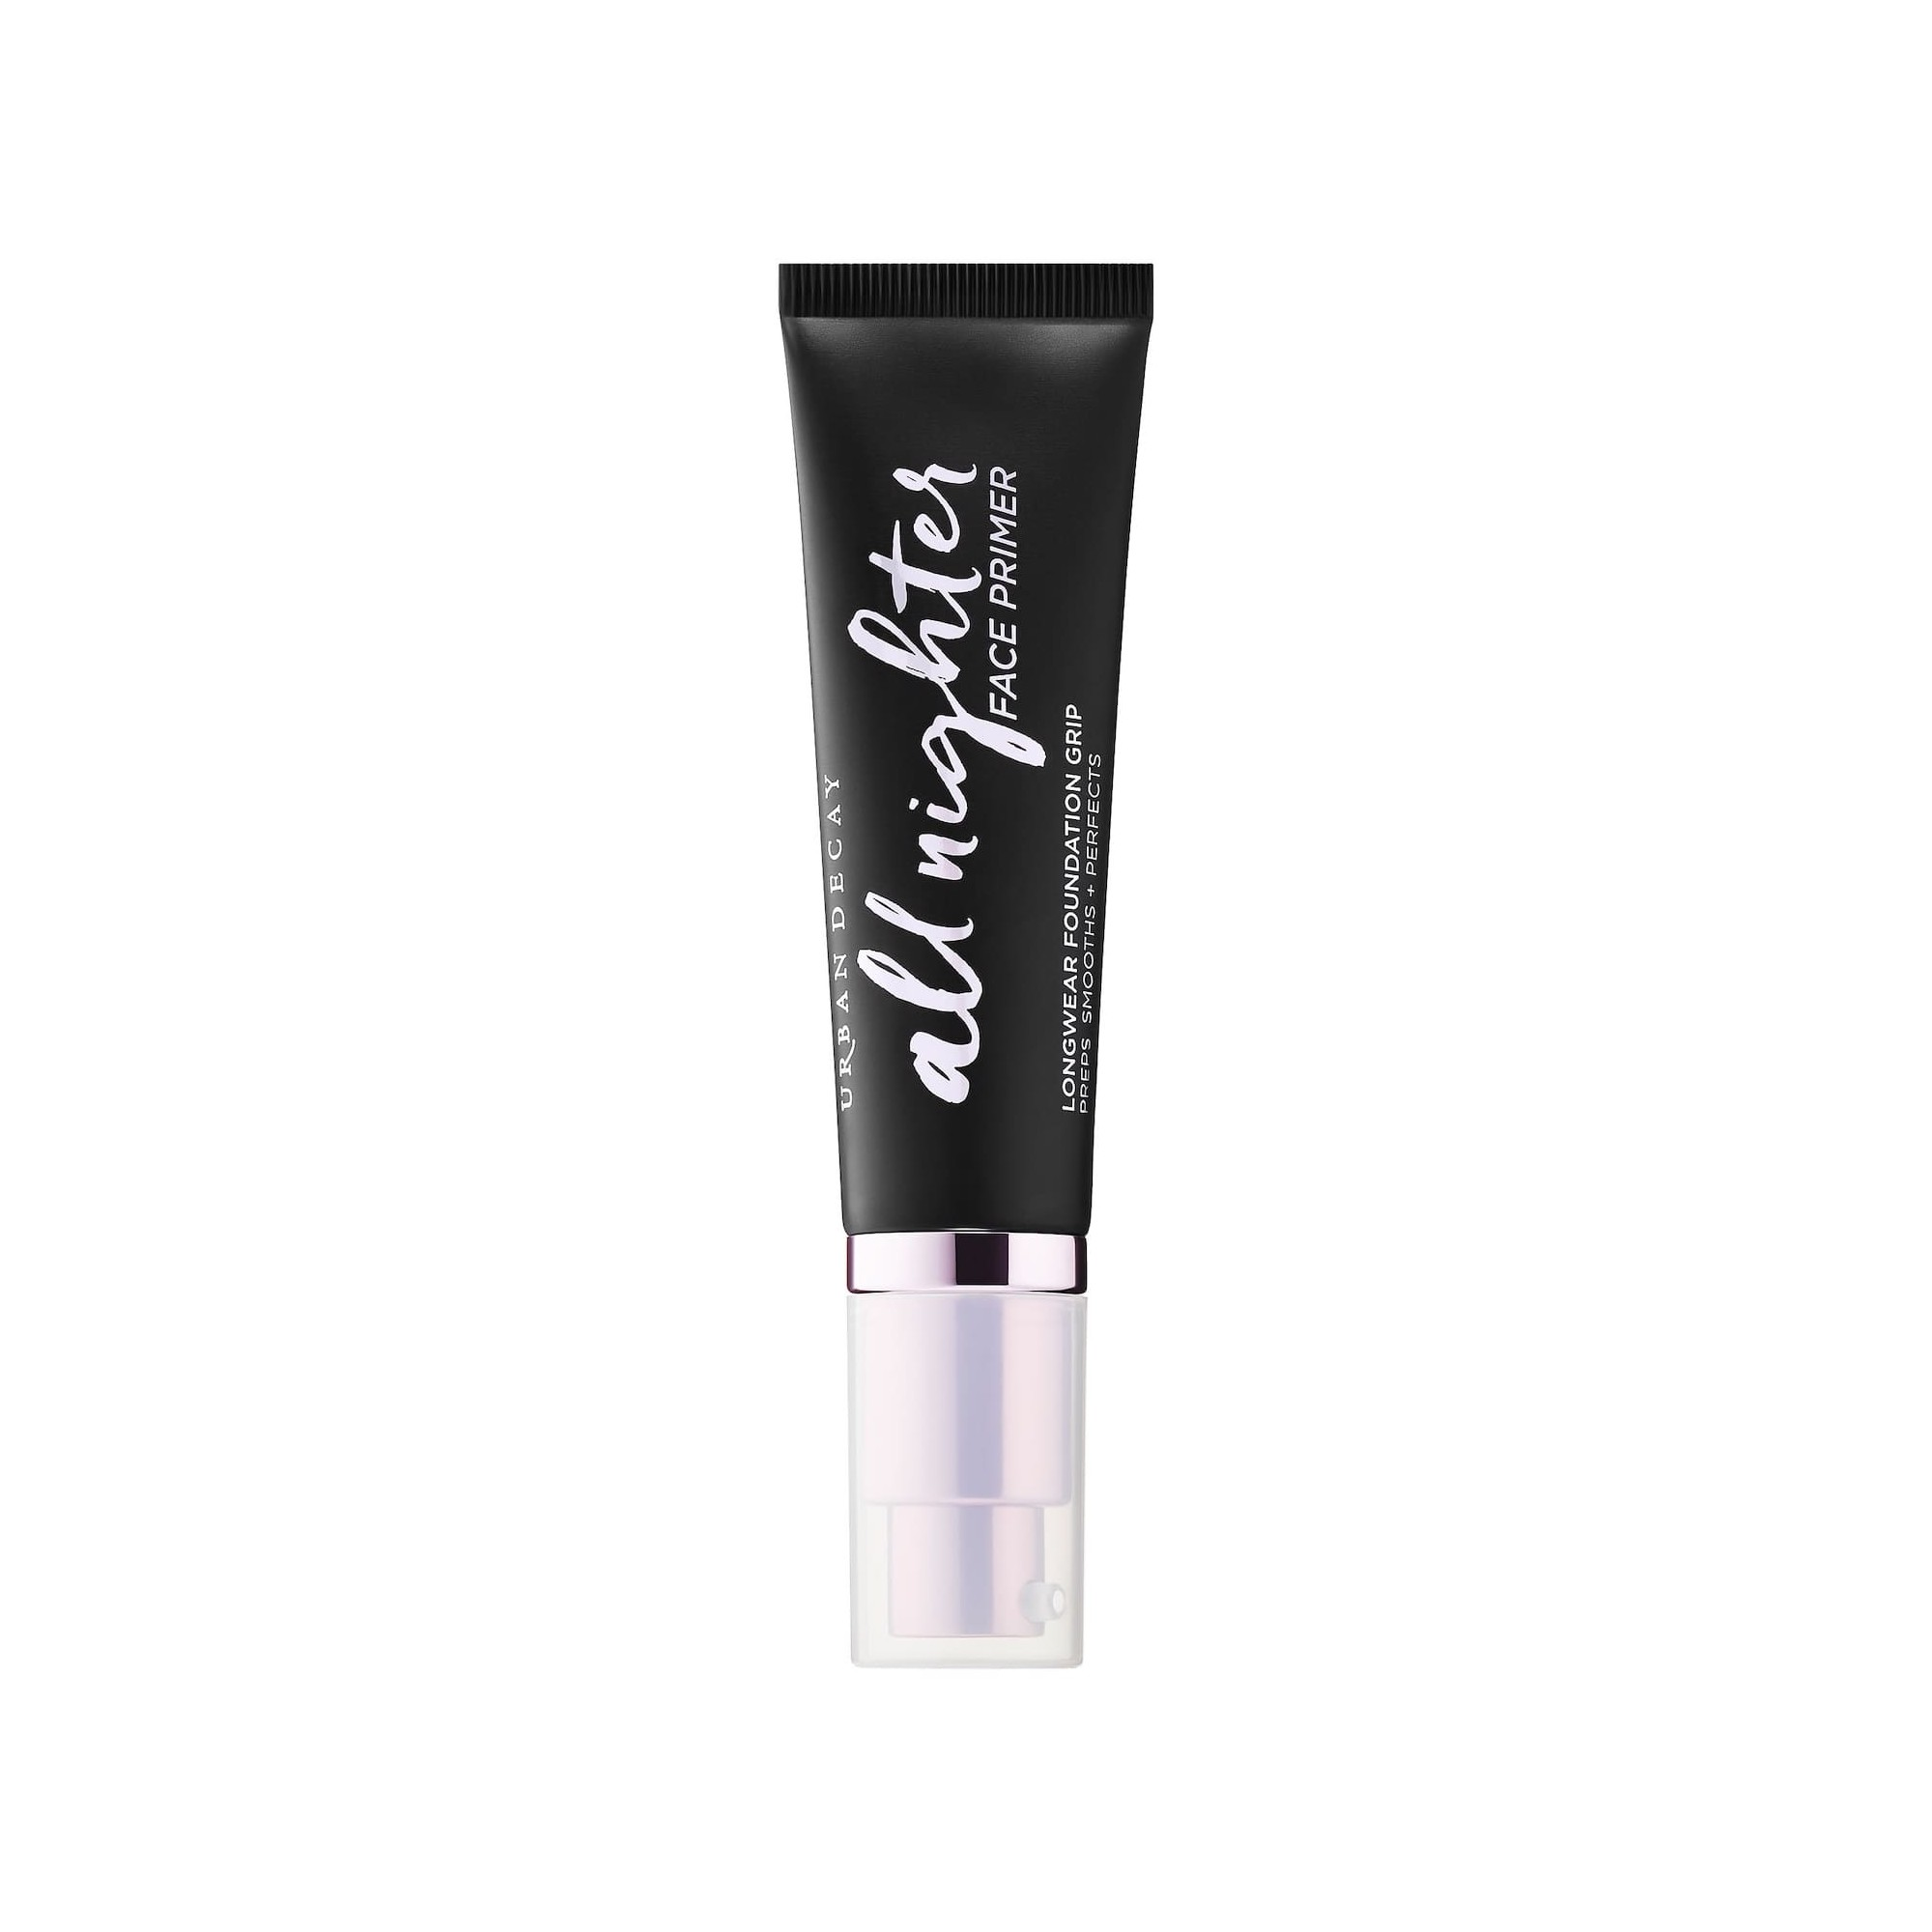 Urban Decay All Nighter Face Primer